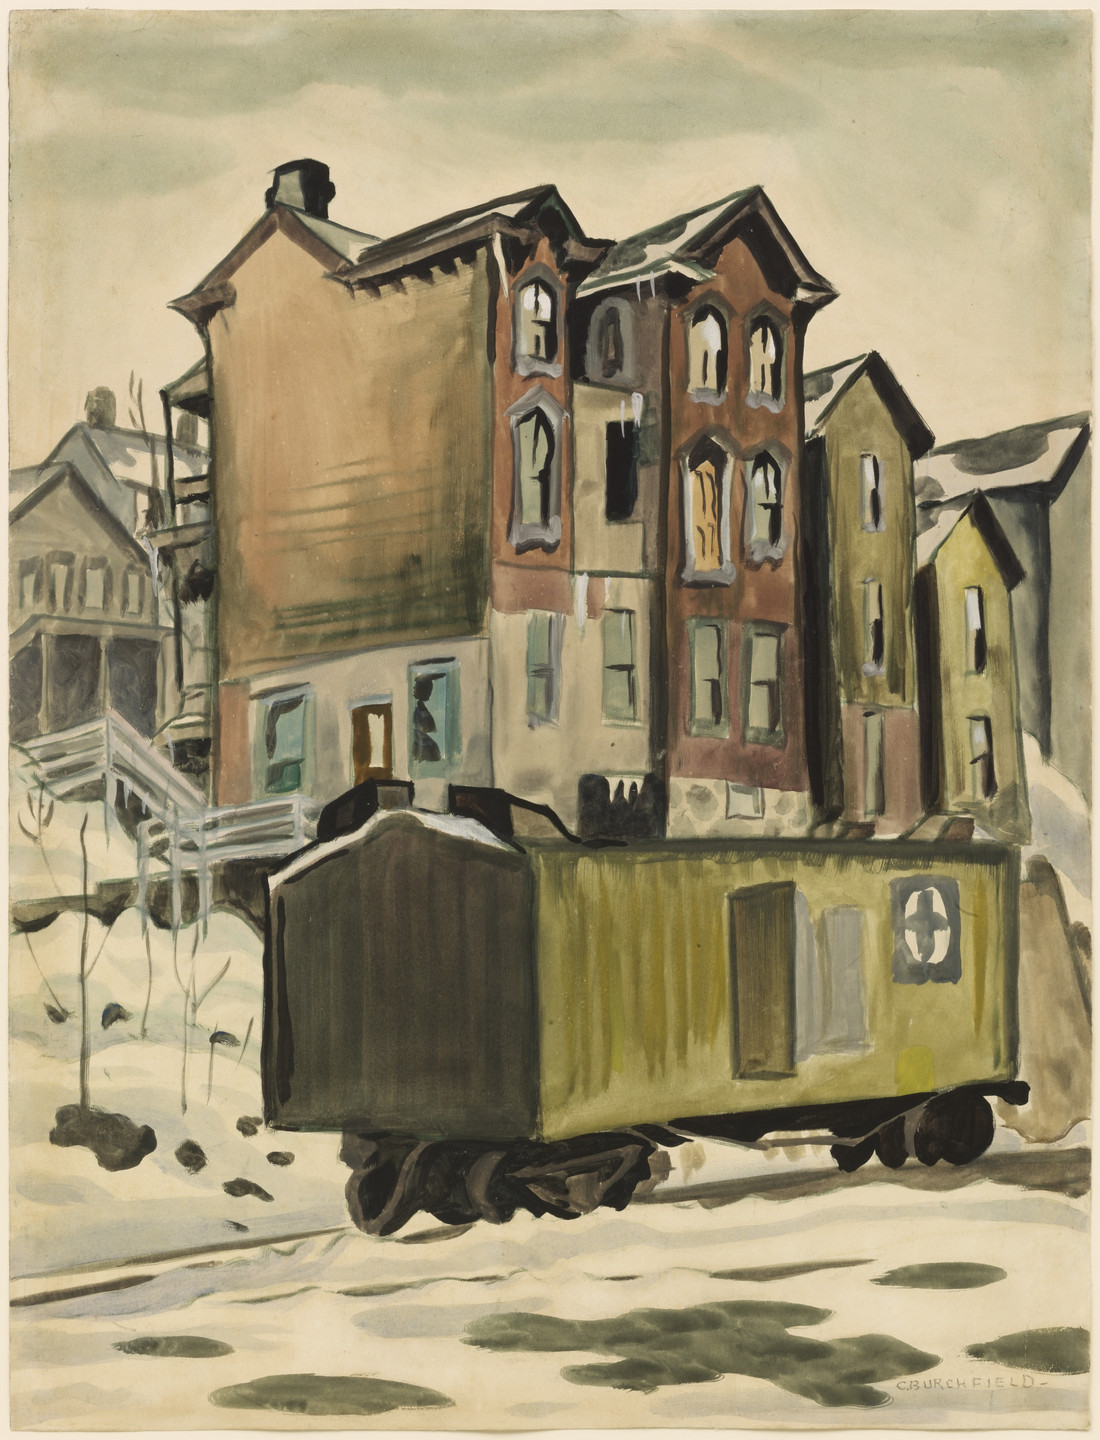 Charles Burchfield. Pippin House, East Liverpool, Ohio. (1920)